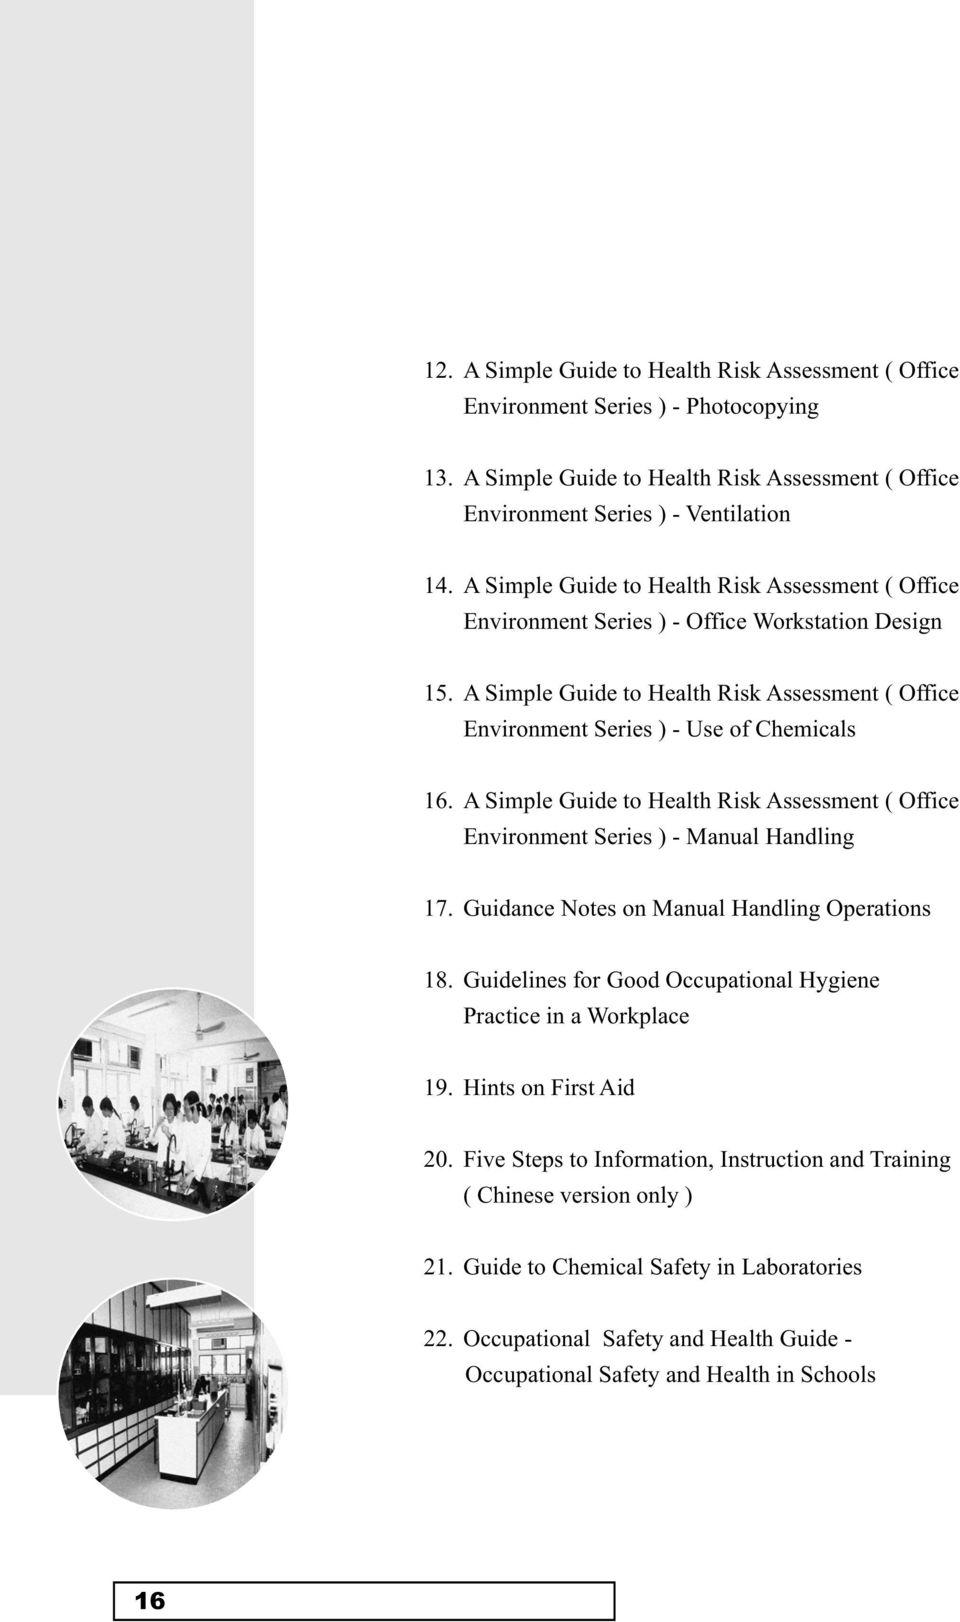 A Simple Guide to Health Risk Assessment ( Office Environment Series ) - Manual Handling 17. Guidance Notes on Manual Handling Operations 18.